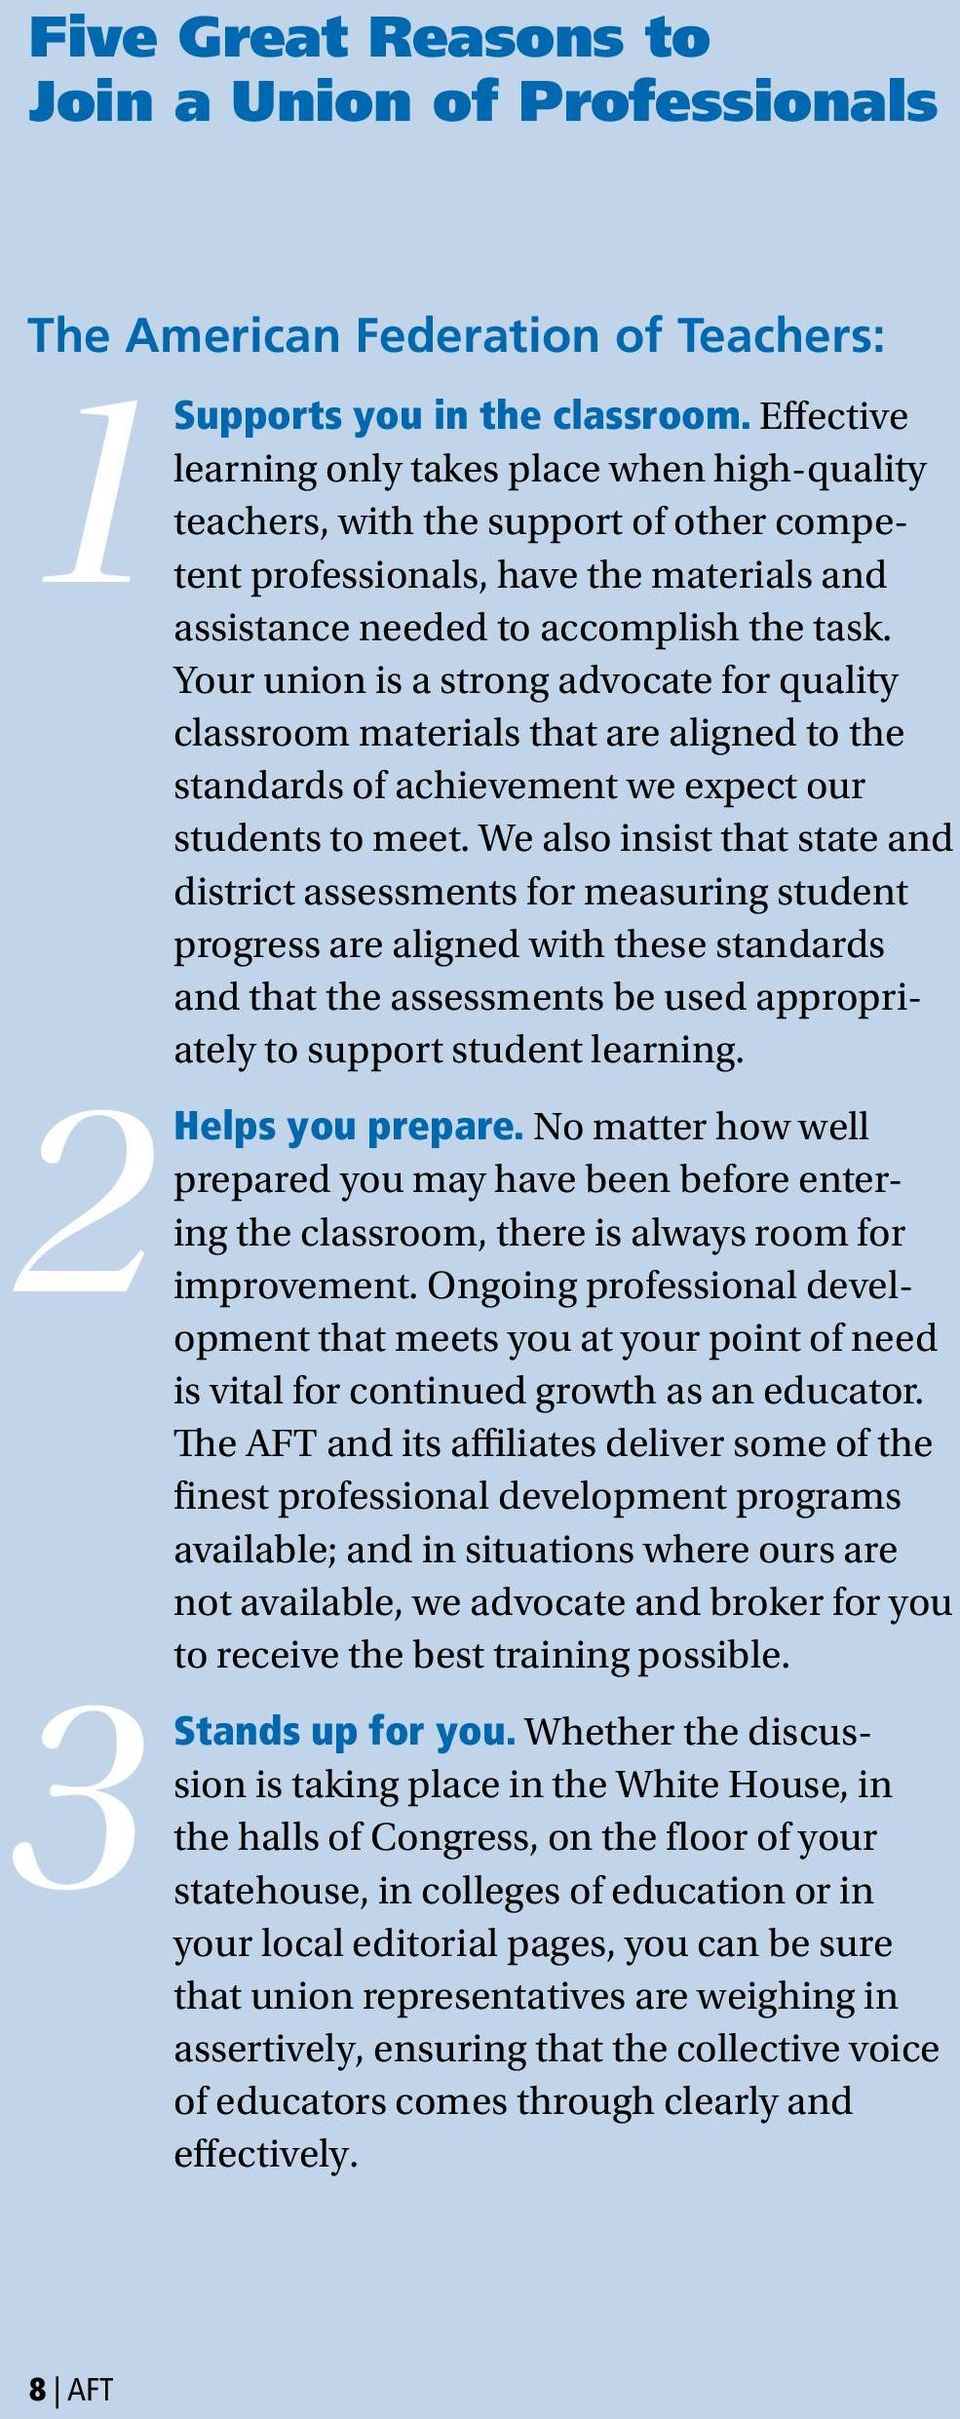 Your union is a strong advocate for quality classroom materials that are aligned to the standards of achievement we expect our students to meet.